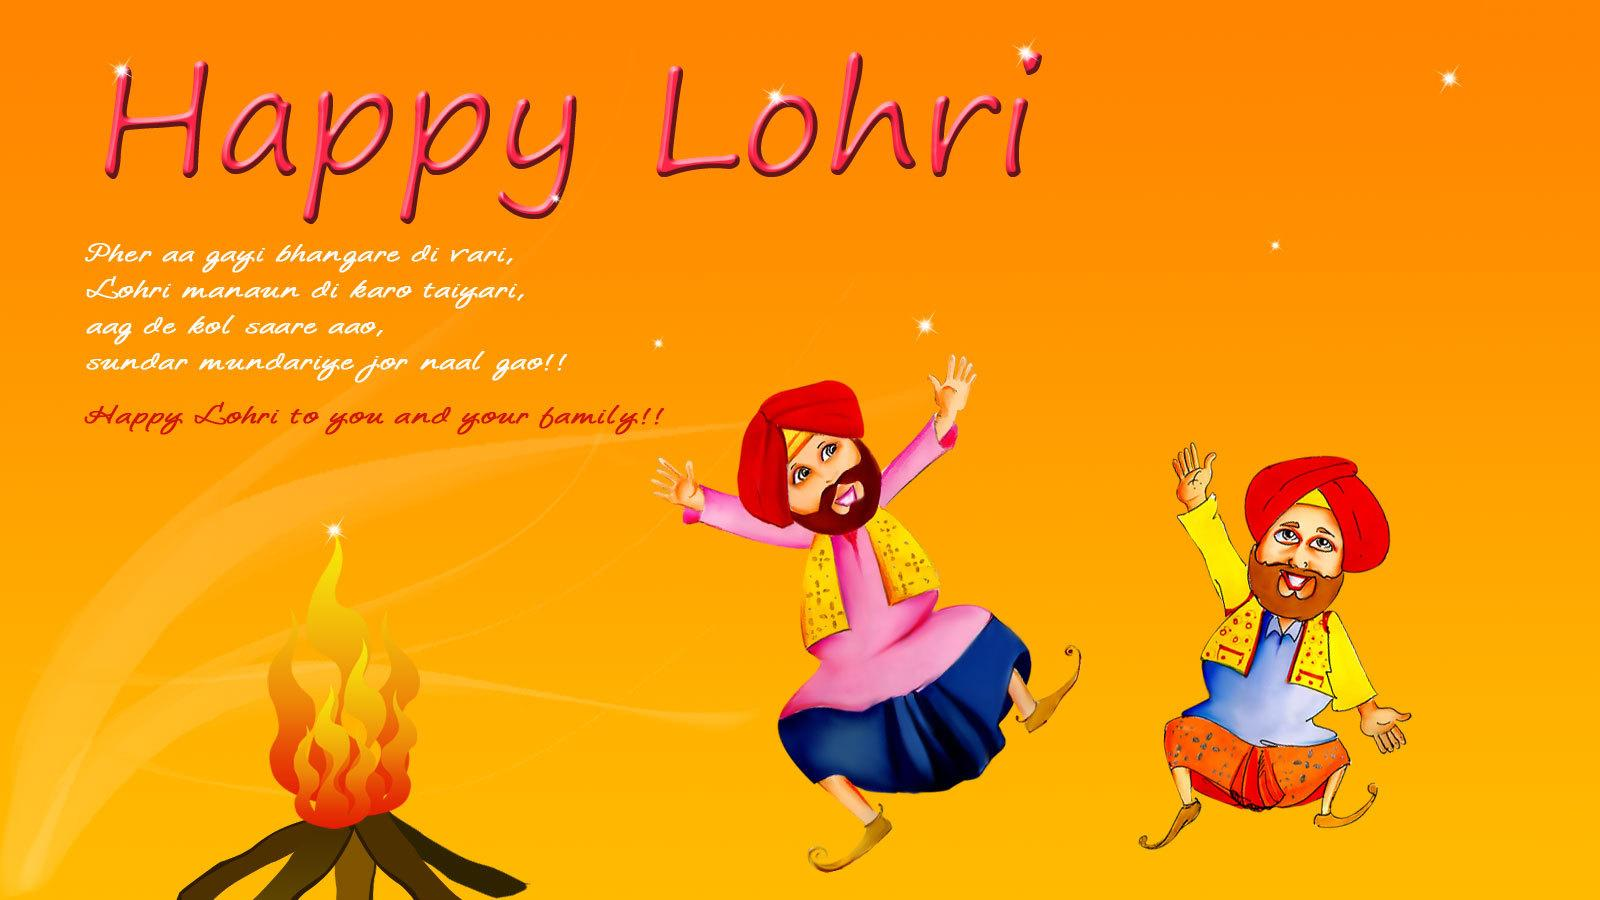 Lohri Greetings